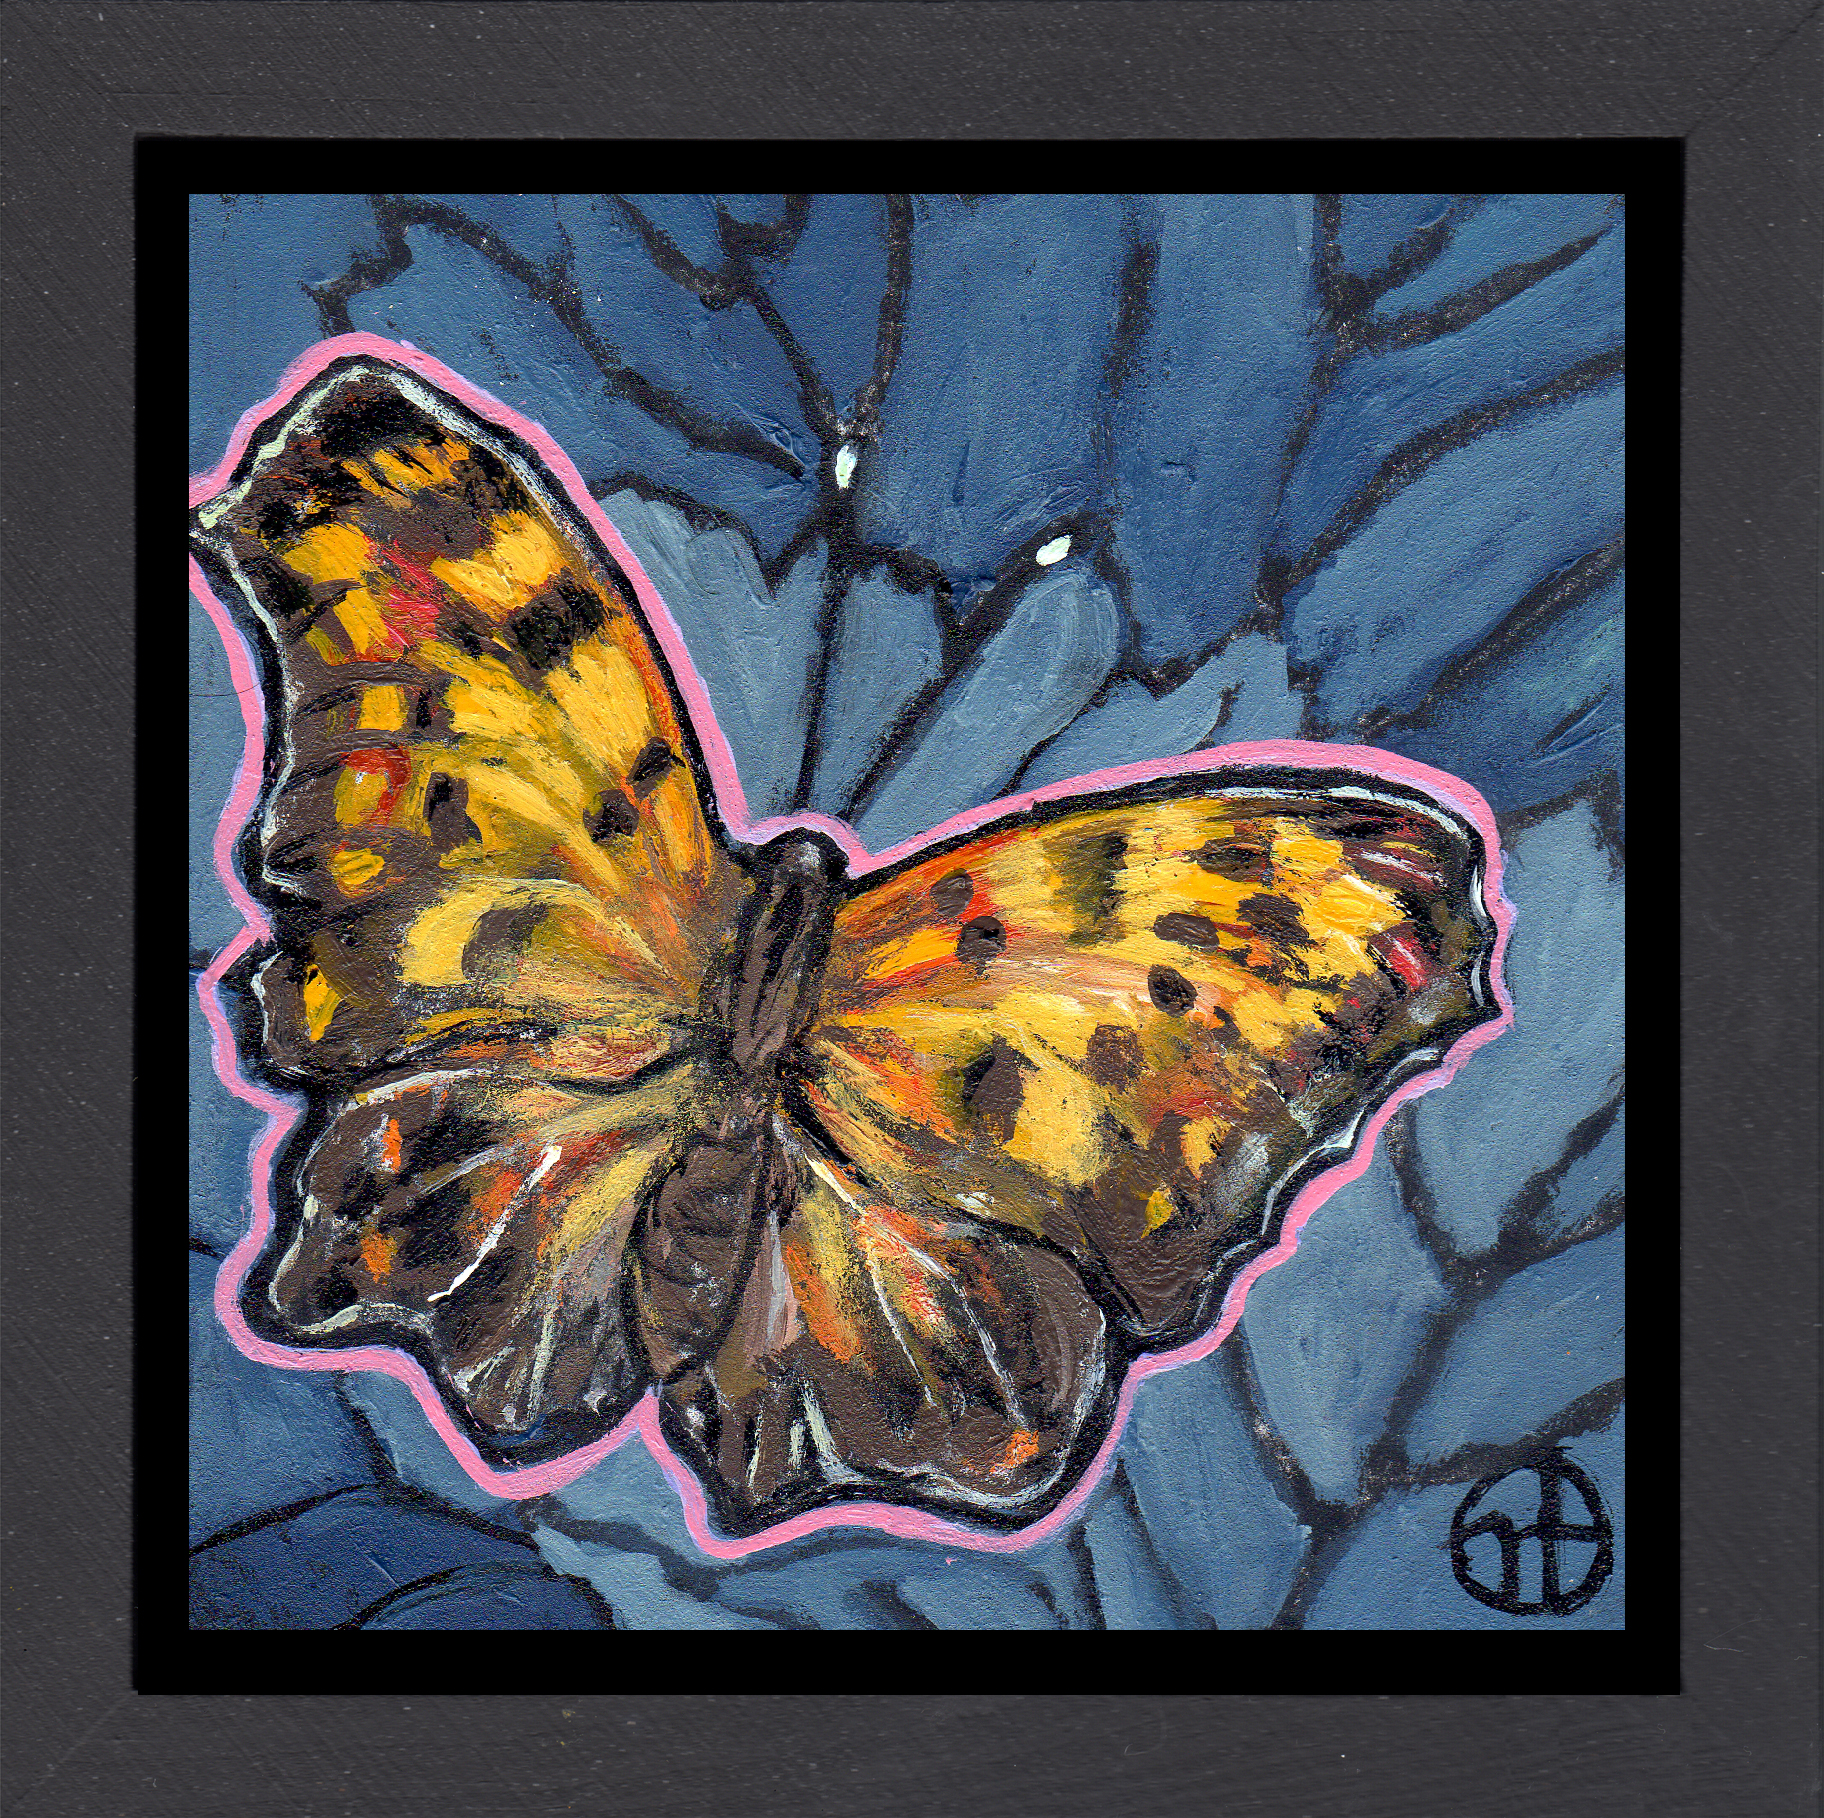 Sold.  Day 23: A question mark butterfly  acrylic on wood  6.5 x 6.5 inches, 1.5 inch deep wood frame